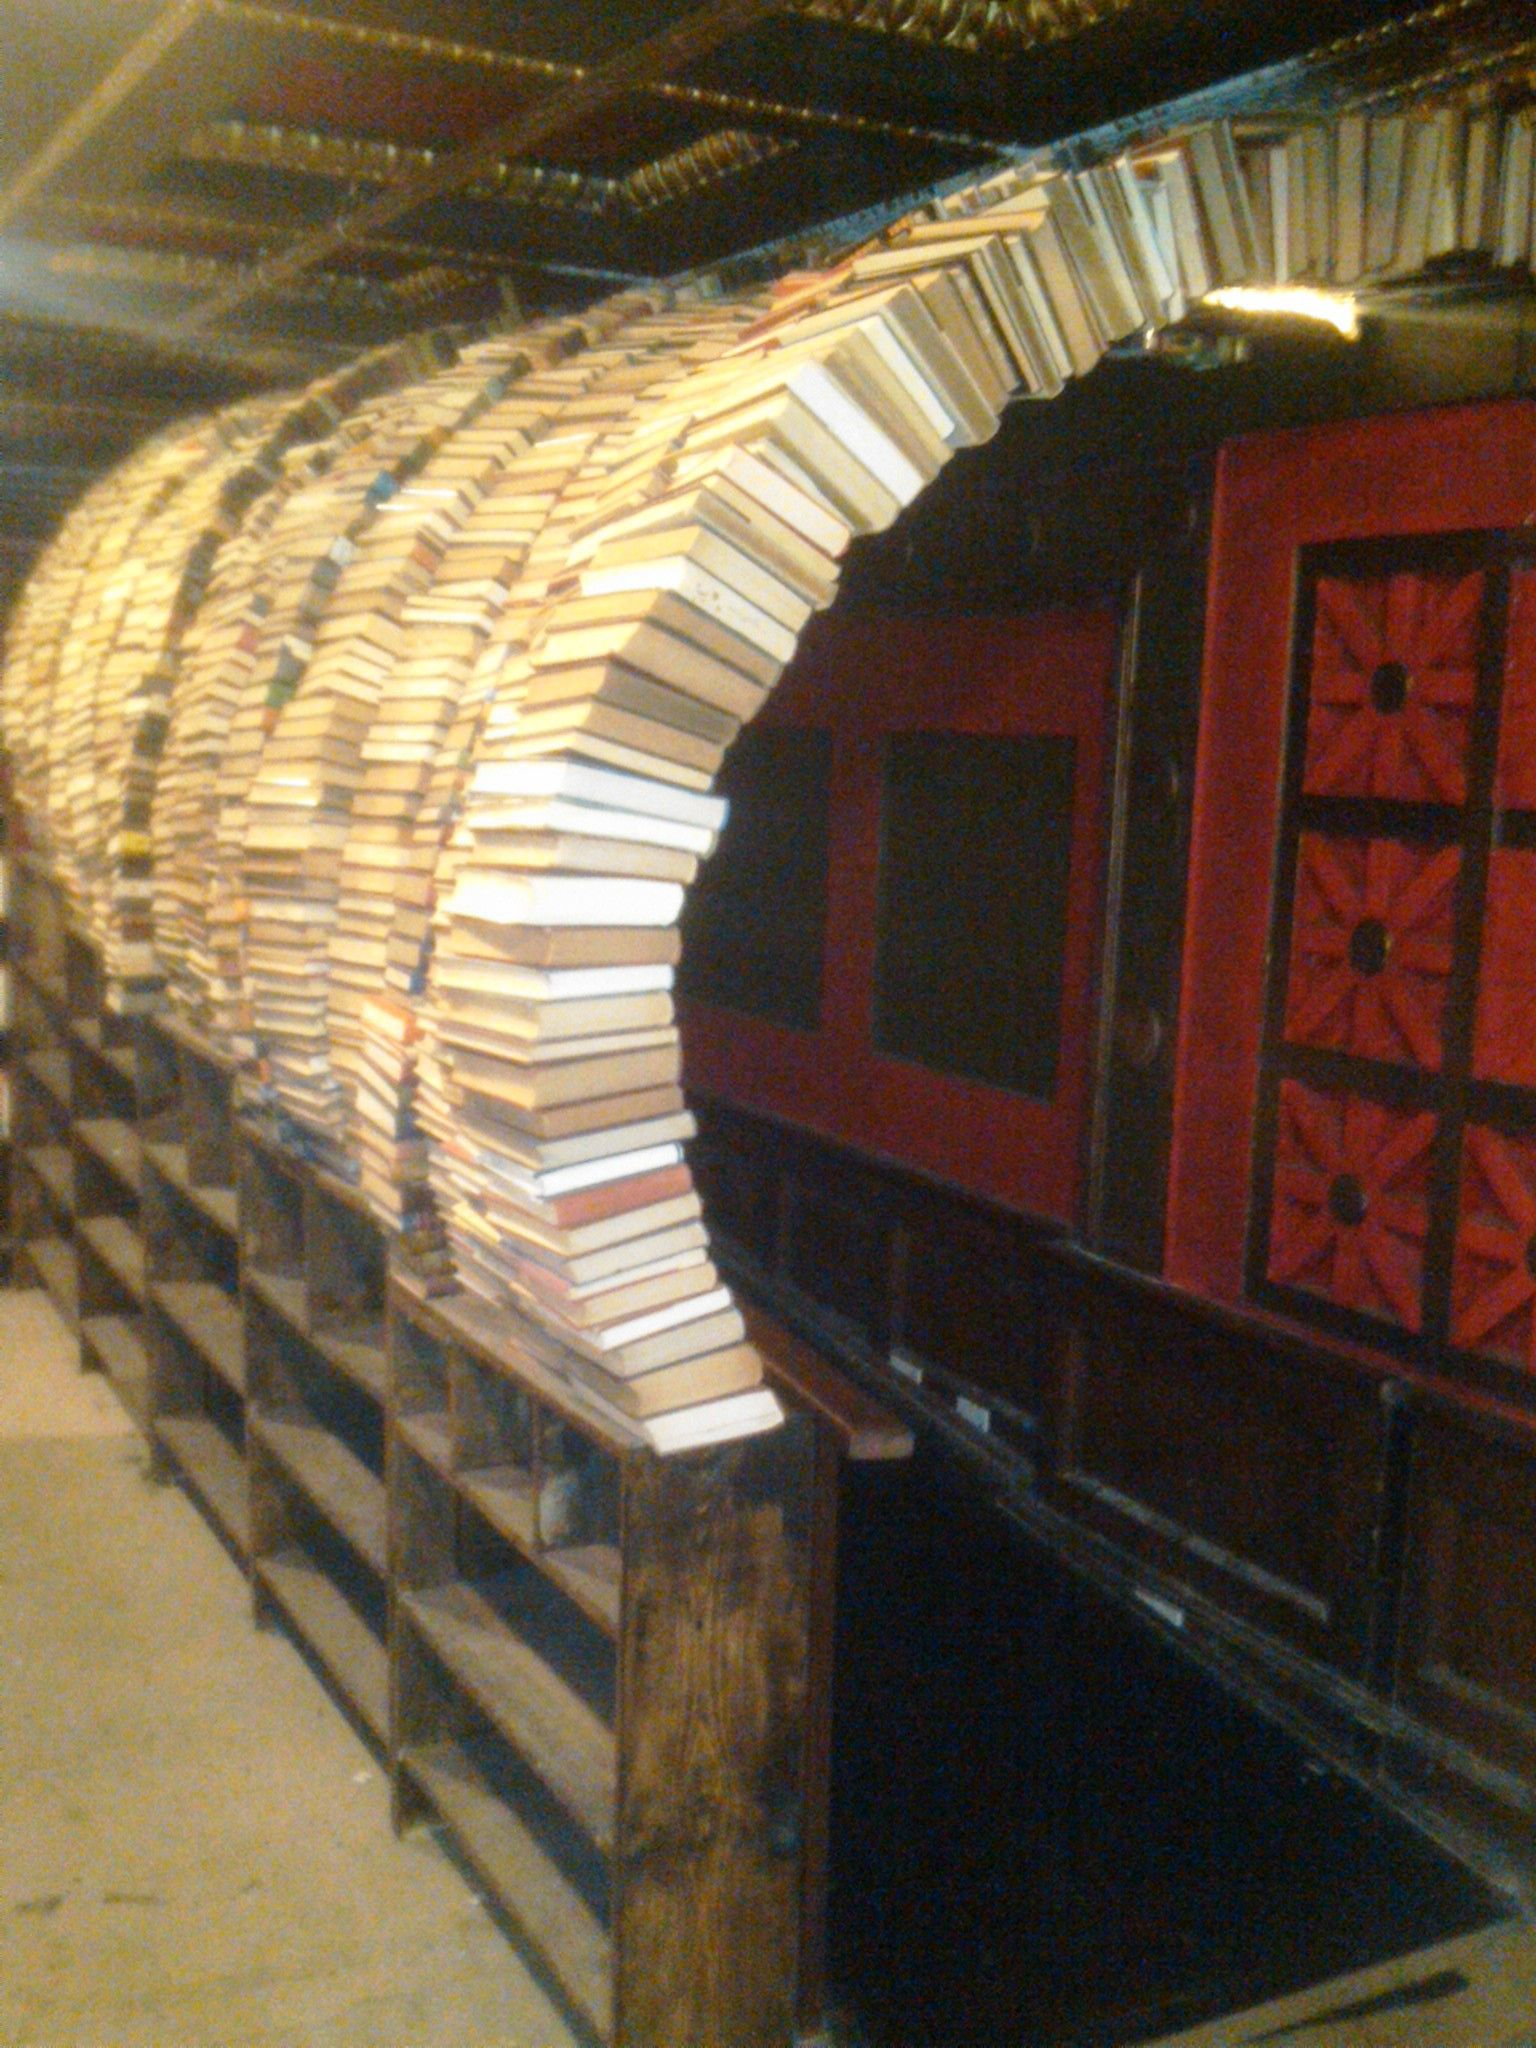 Arch of books at the Last Bookstore